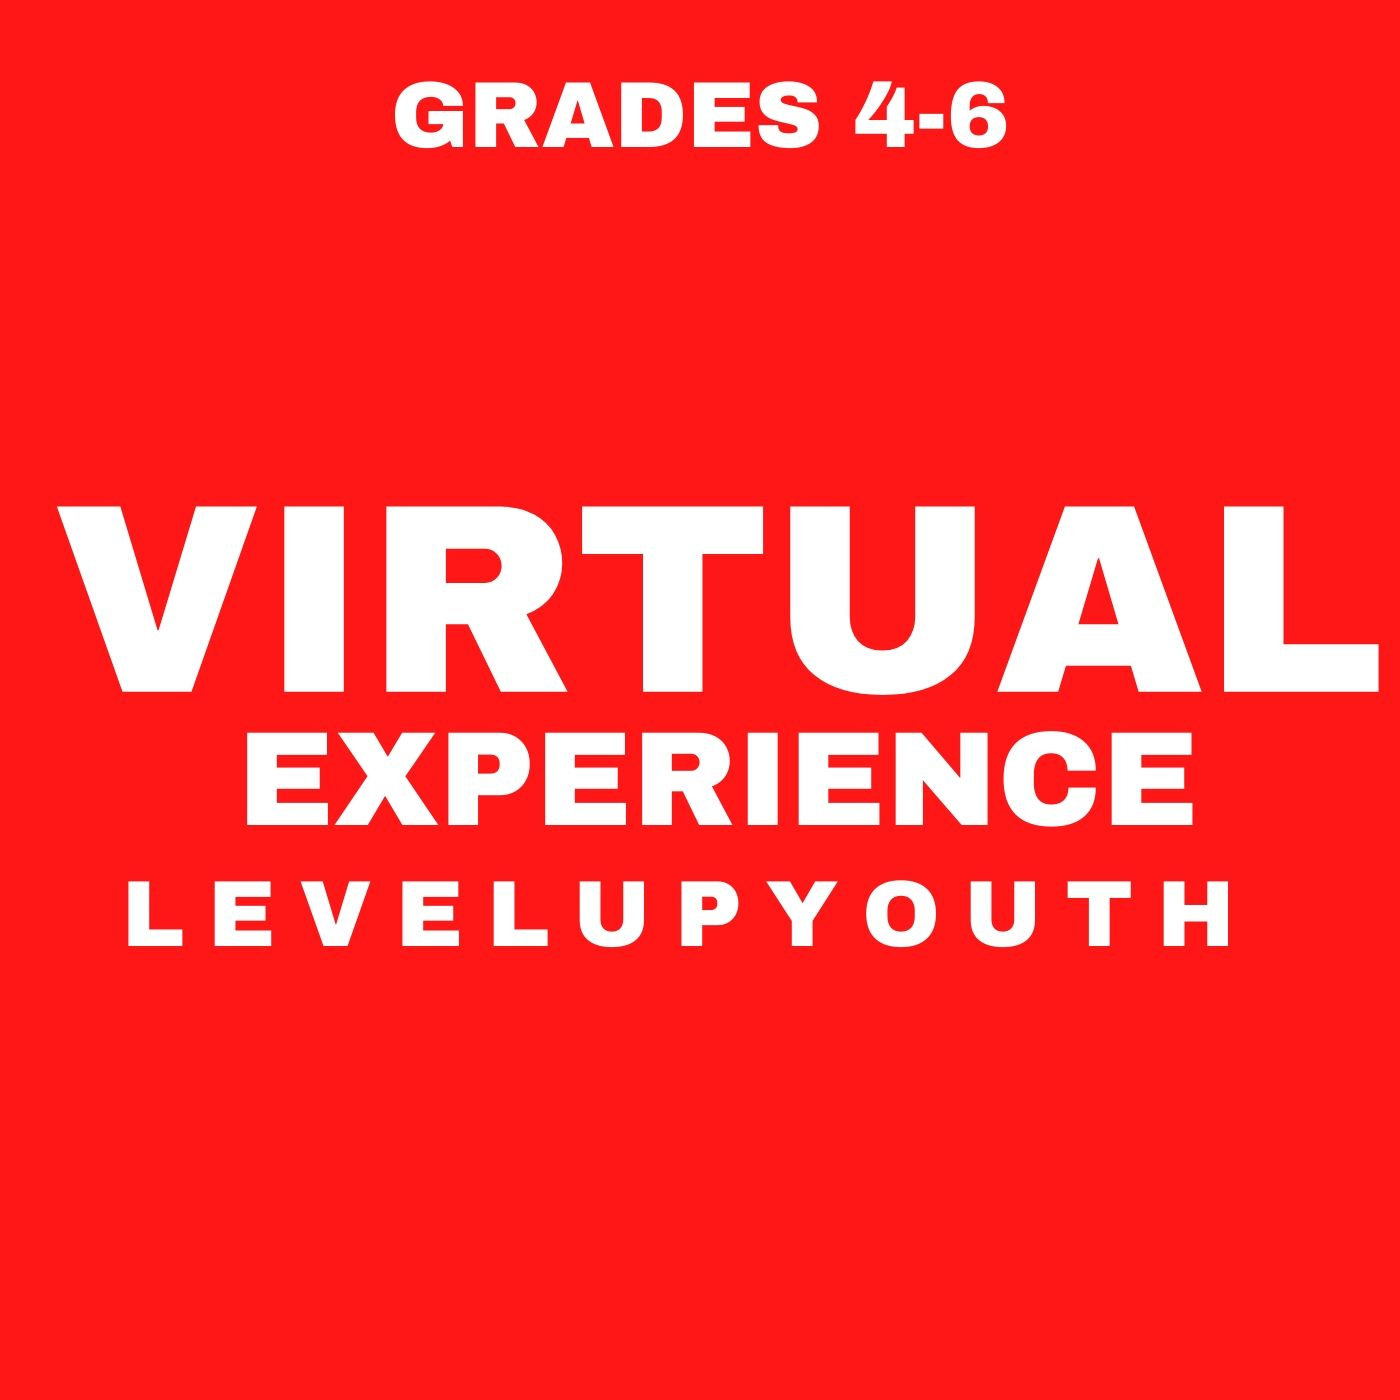 Virtual Experience /for only grades 4-6